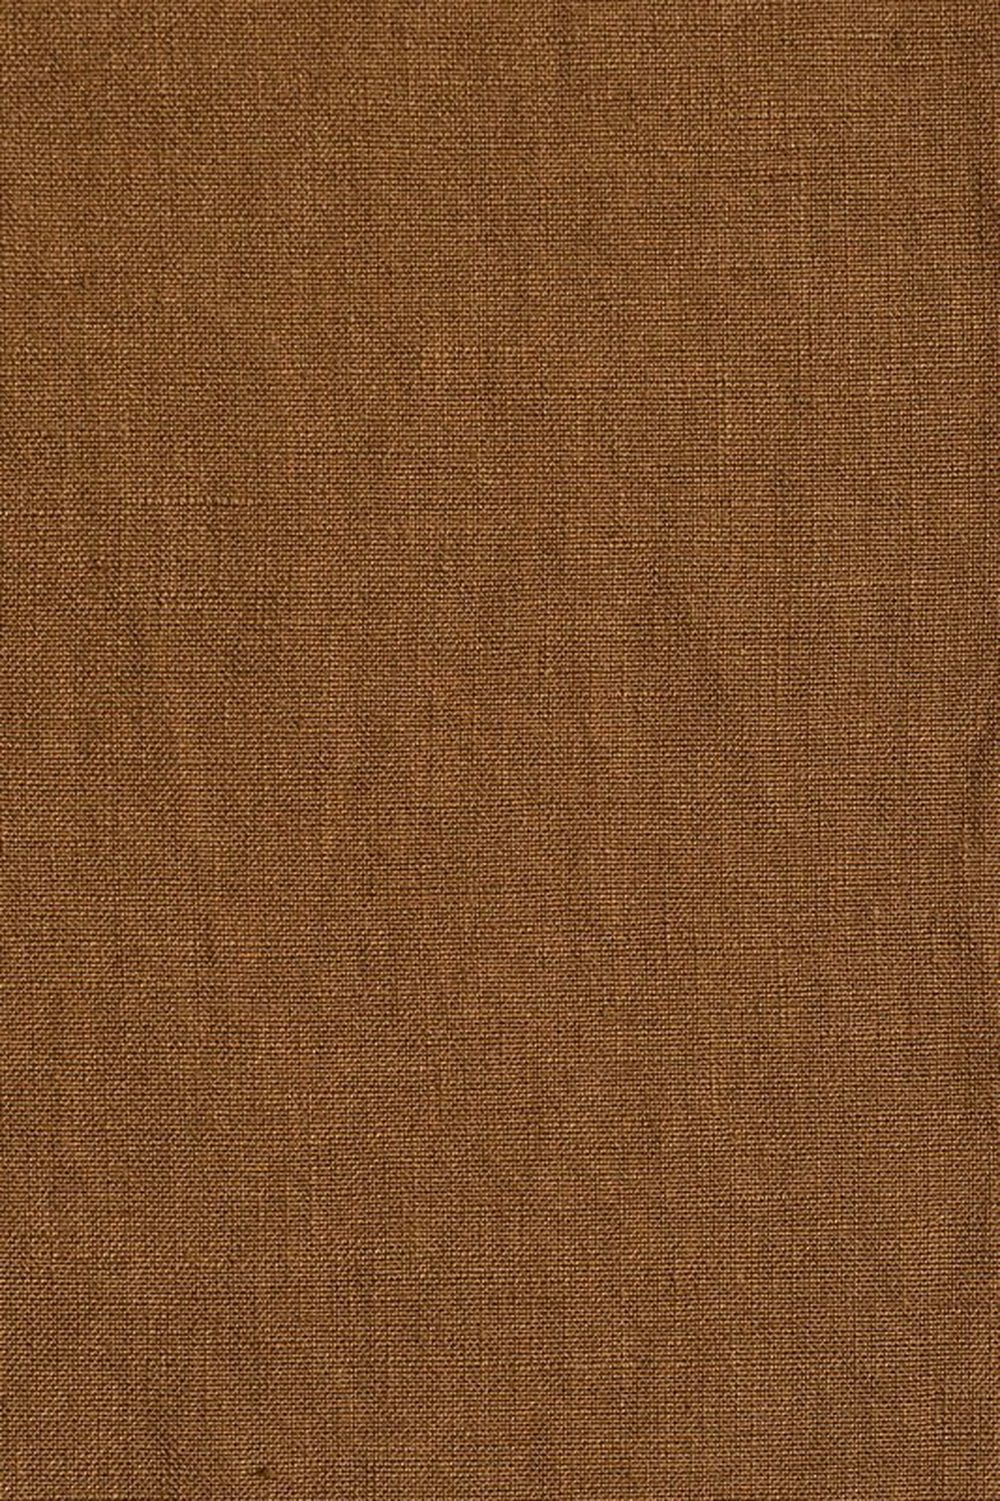 Photo of the fabric Satori Stonewash Burnt Orange swatch by Mokum. Use for Curtains, Upholstery Light Duty, Accessory, Top of Bed. Style of Plain